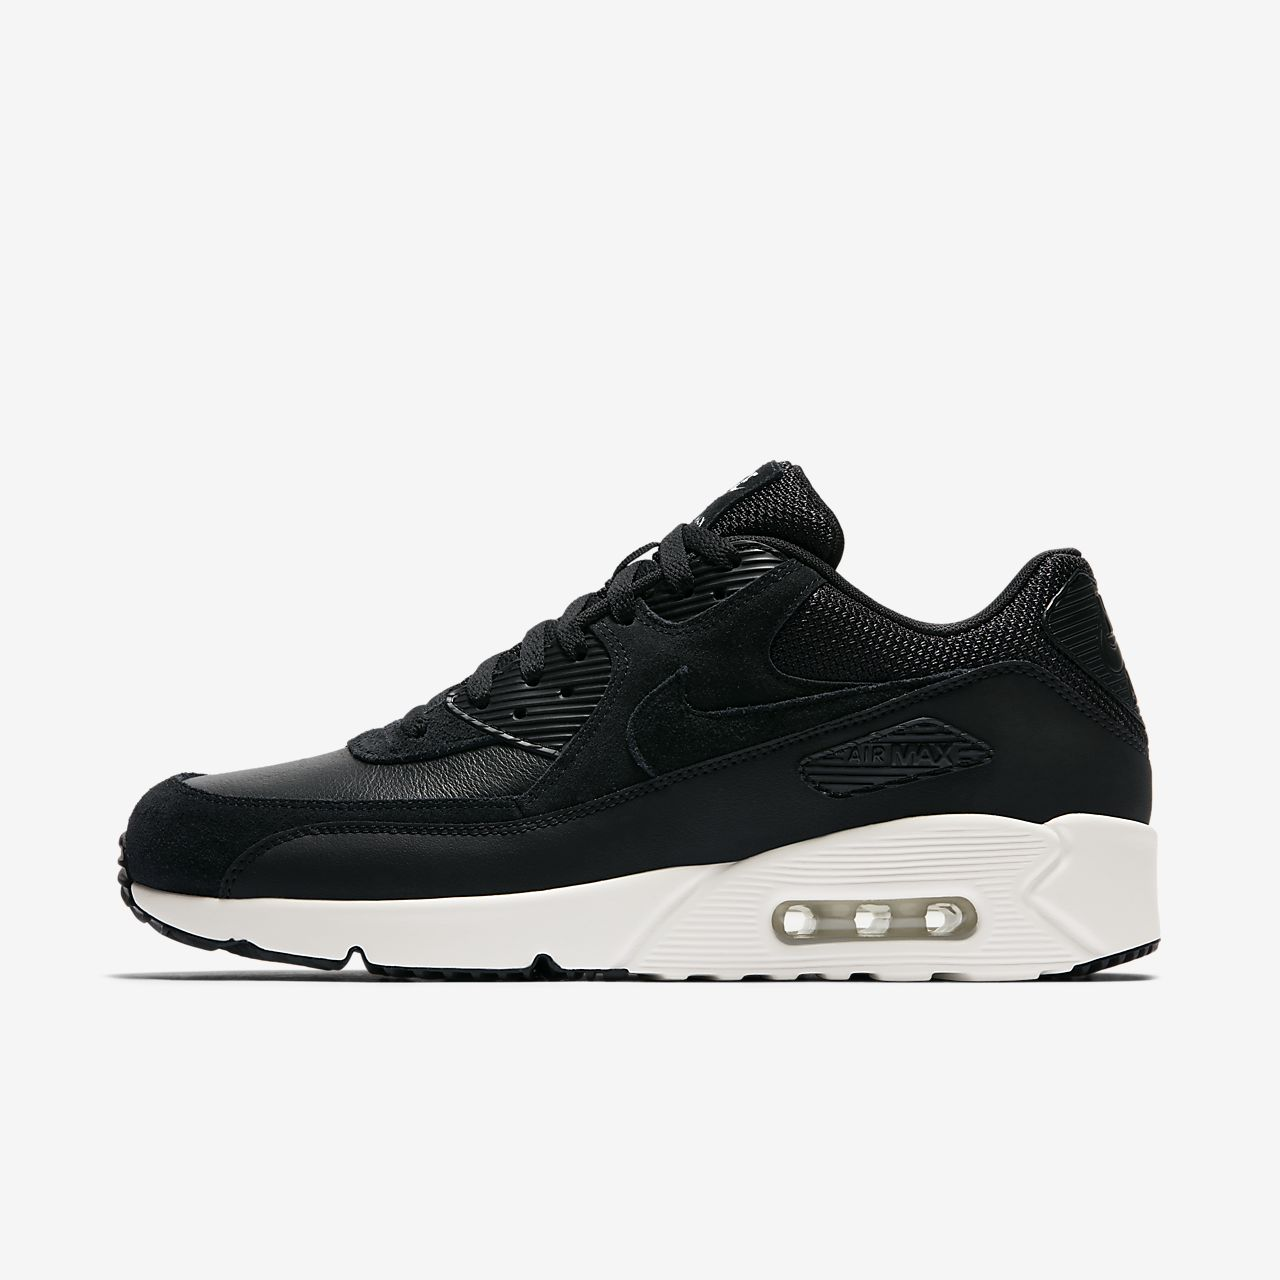 nike air max 90 grey black white nz